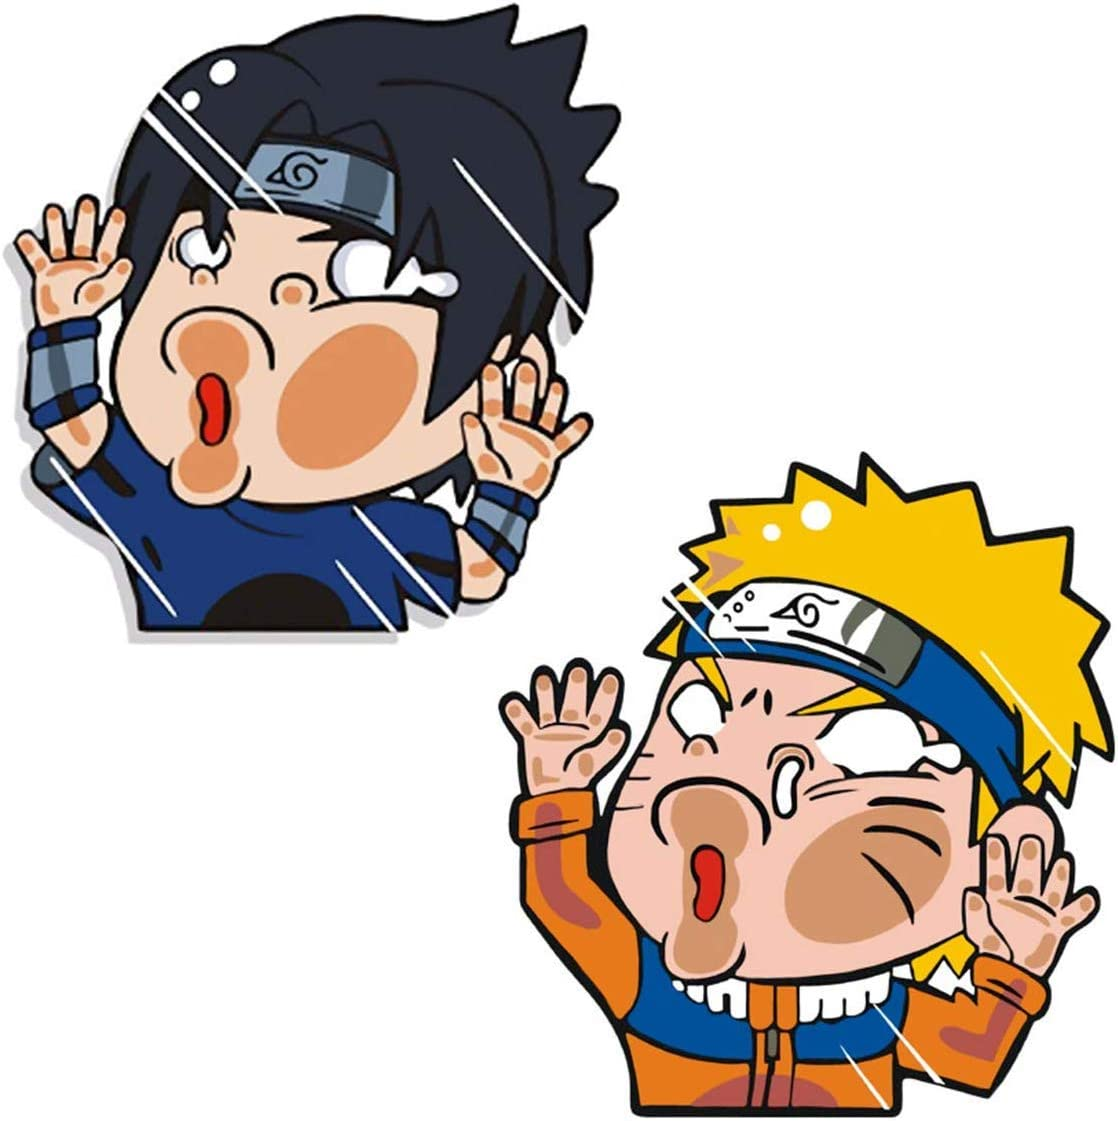 Smart-Naruto & Sasuke Funny colorful set of decals Hitting Glass Vinyl Stickers for Car/Window/Laptop/Walls